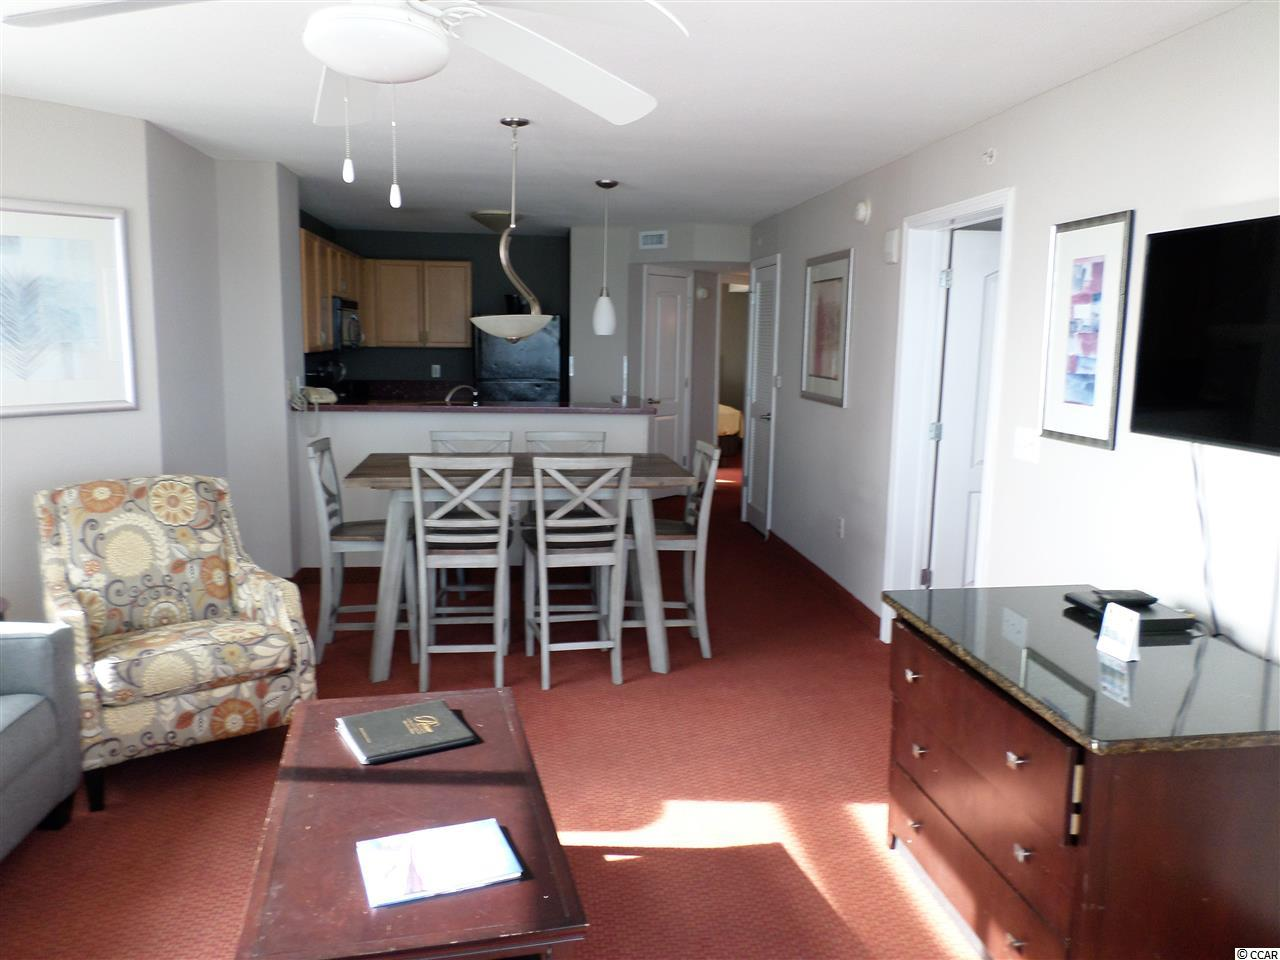 Prince Resort - Phase II - Cherr condo for sale in North Myrtle Beach, SC